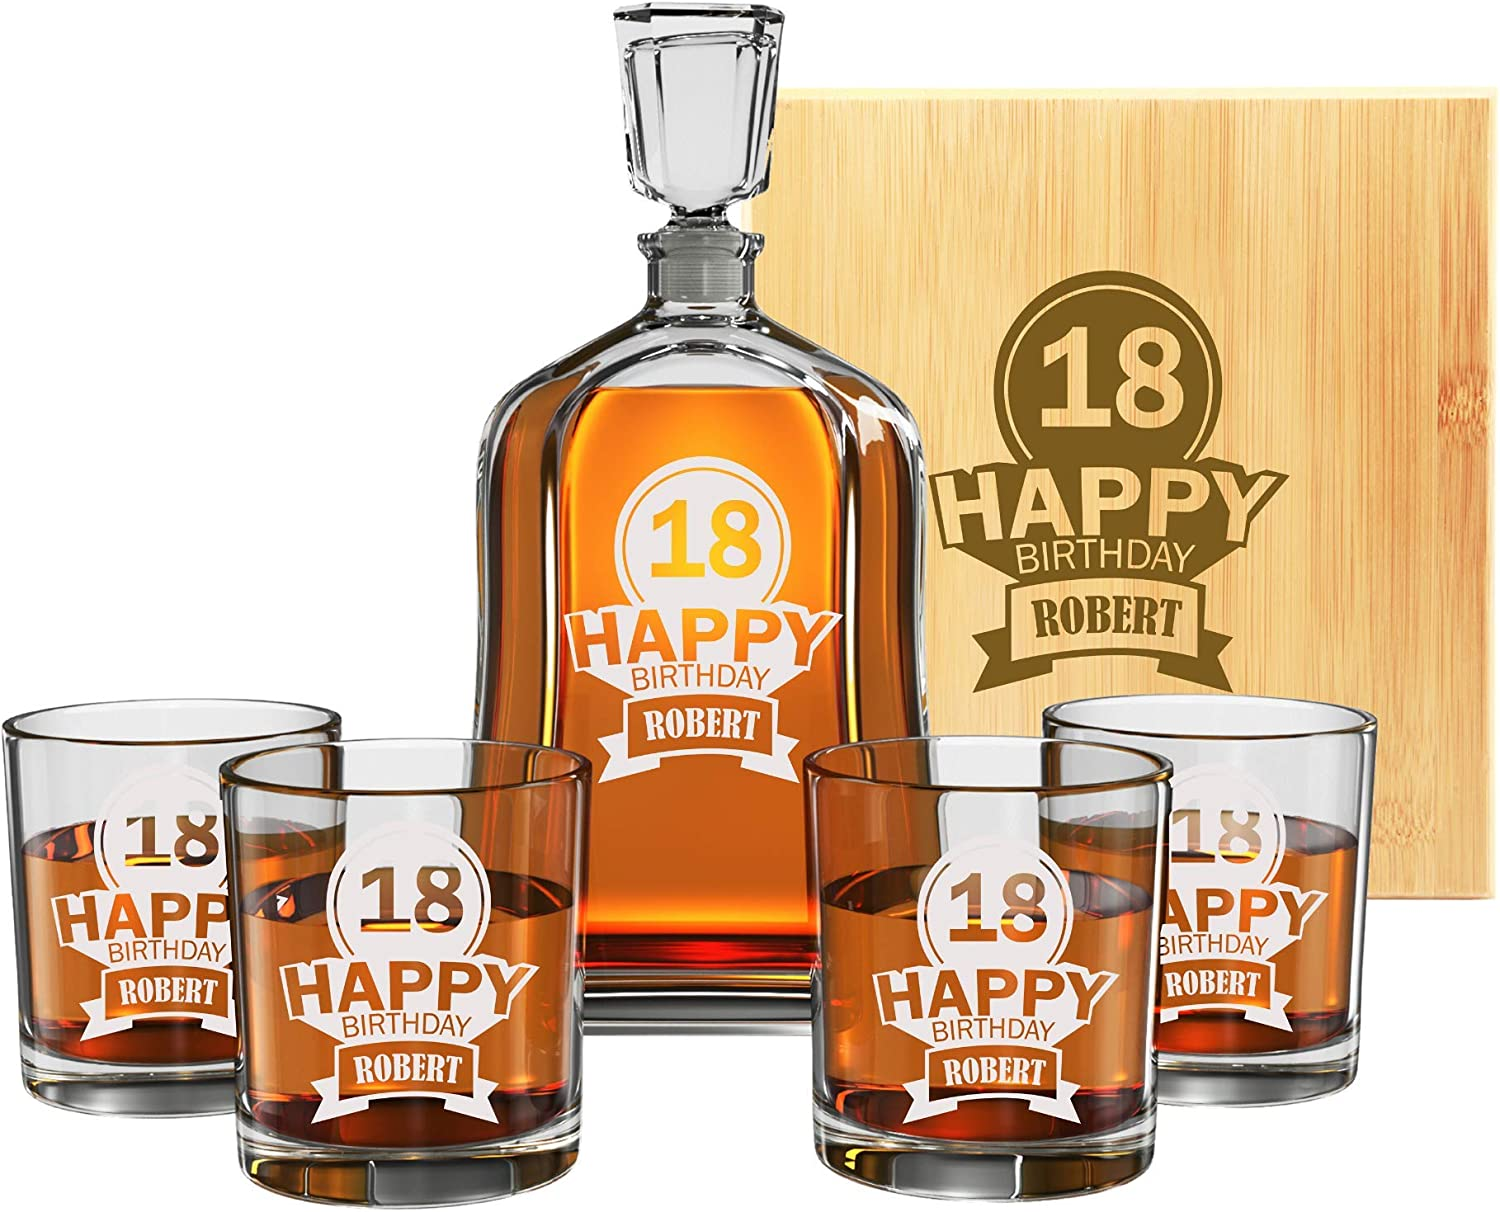 Premium Custom Engraved Whiskey Decanter Set - Multiple Design & Gift Set Options - Perfect Birthday Present for Dad, Brother, Boss, Men, Guys - Customize Any Age or Year - by Froolu